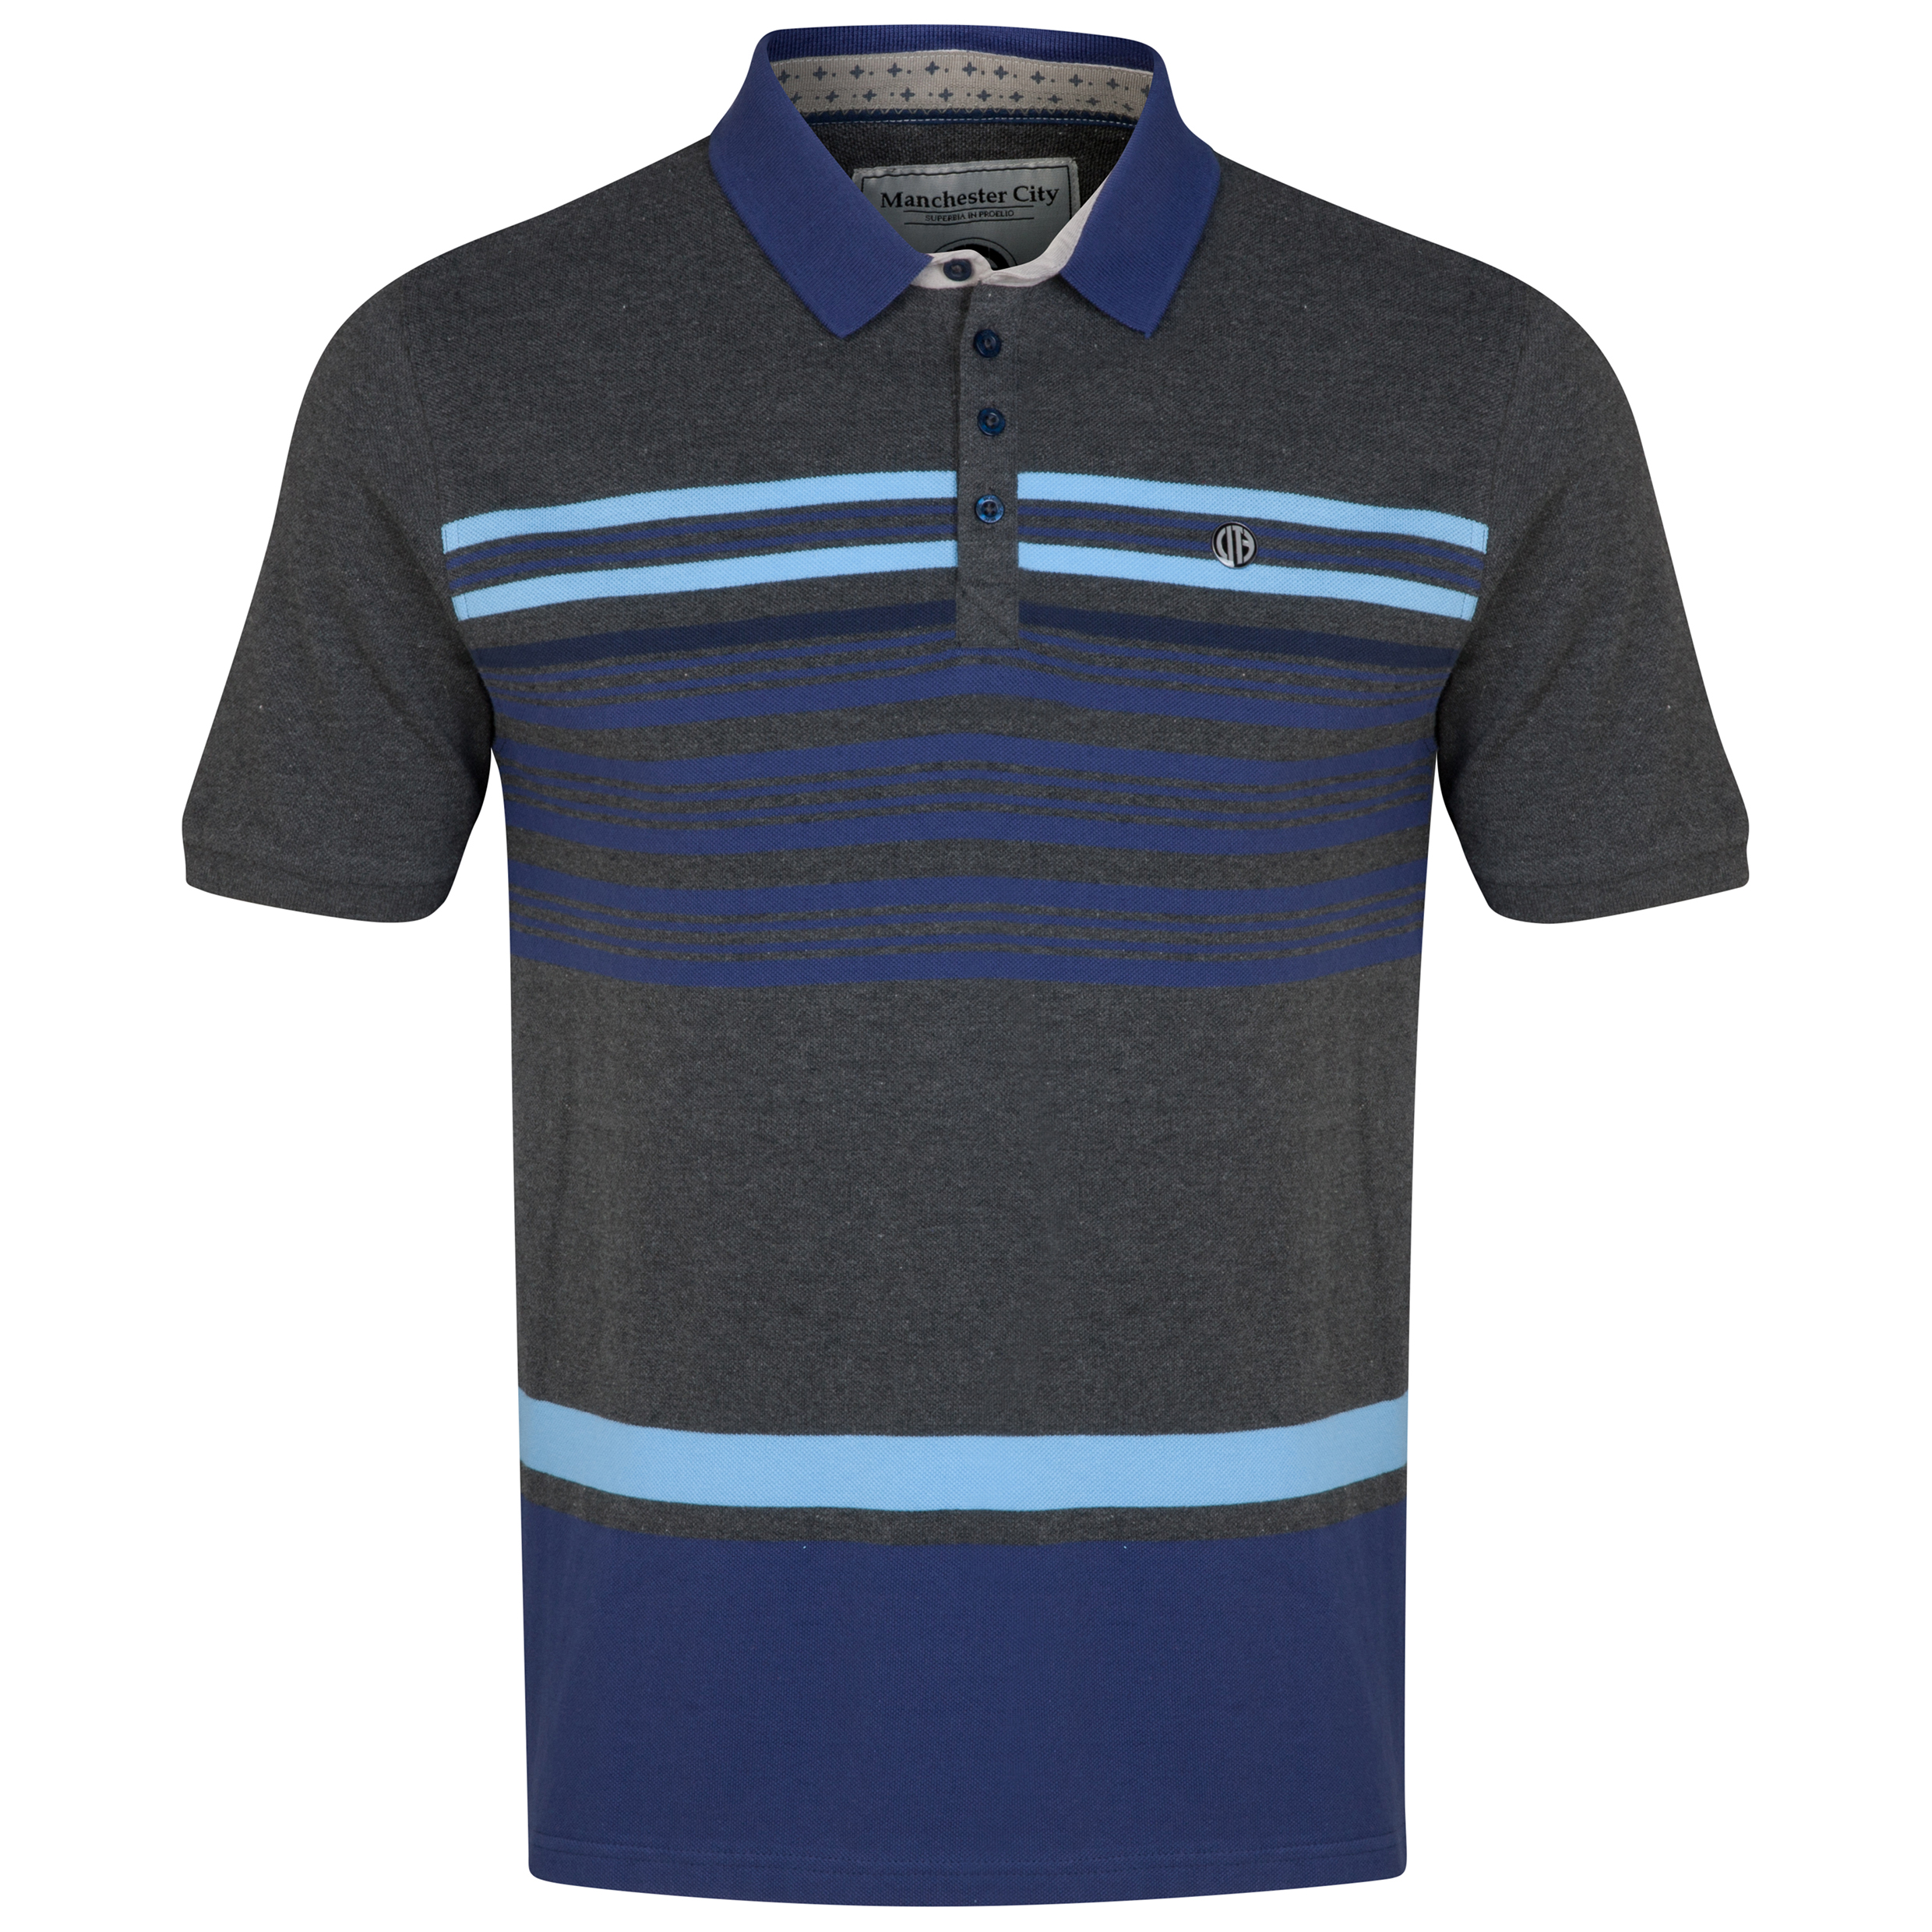 Manchester City Polo Shirt - Charcoal/Navy/Sky - Mens